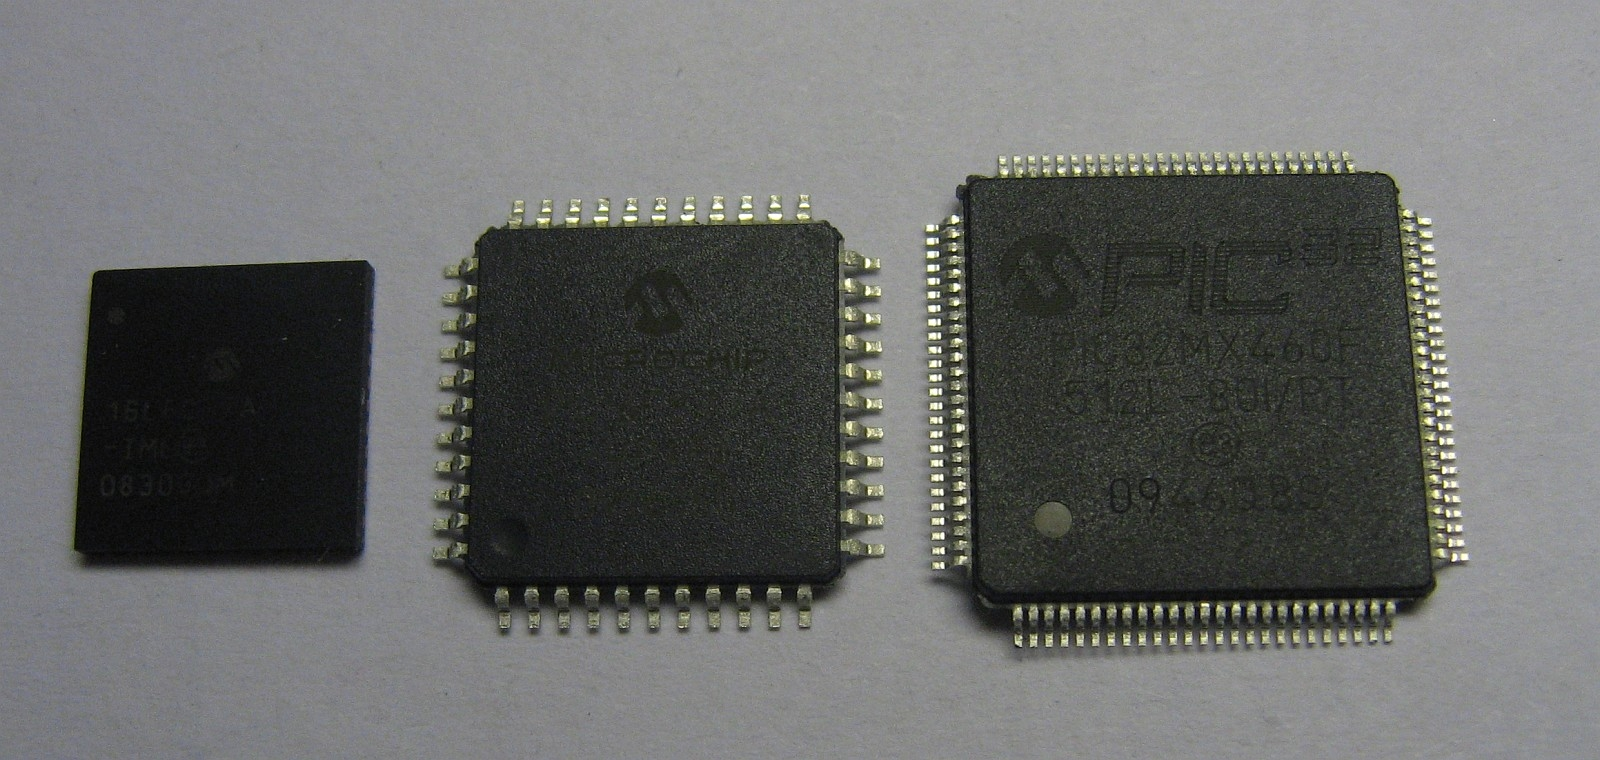 Examples of Integrated Circuits (ICs) which are also commonly called microchips